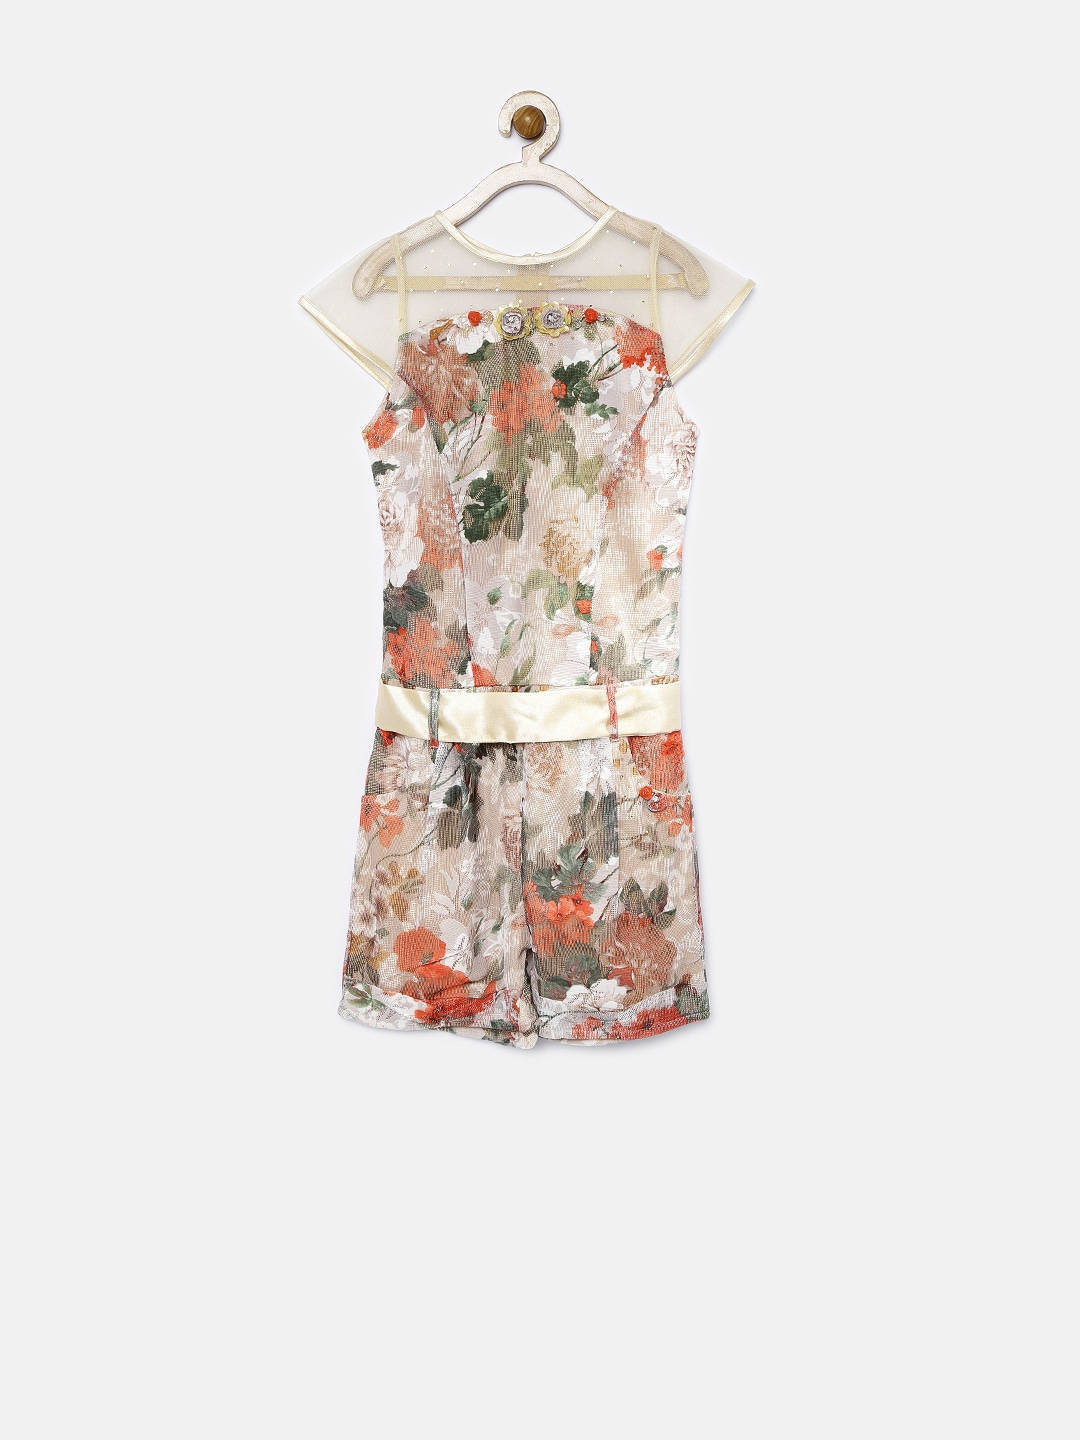 Tiny Girl Beige Floral Print Playsuit with Embellished Detail